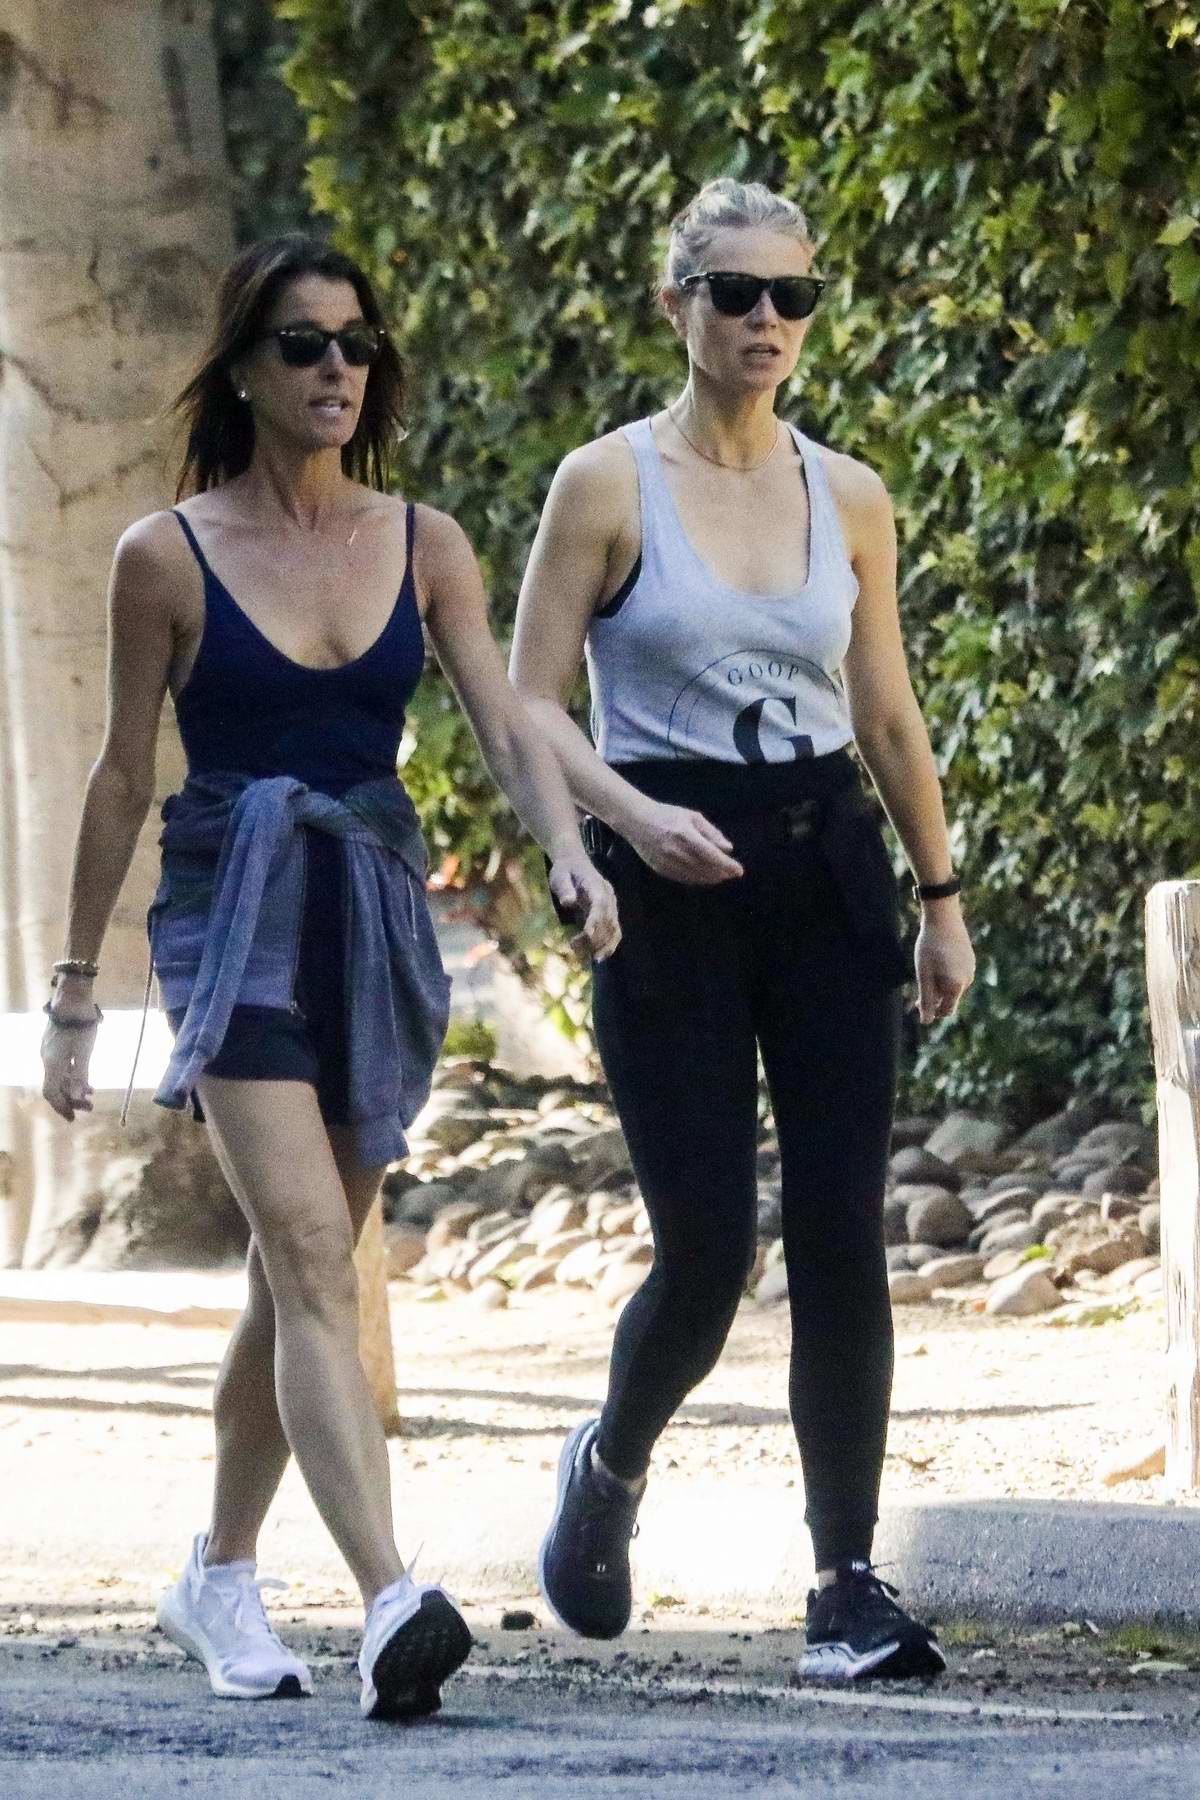 Gwyneth Paltrow wears 'Goop' tank top while out on early morning walk with a friend in Los Angeles